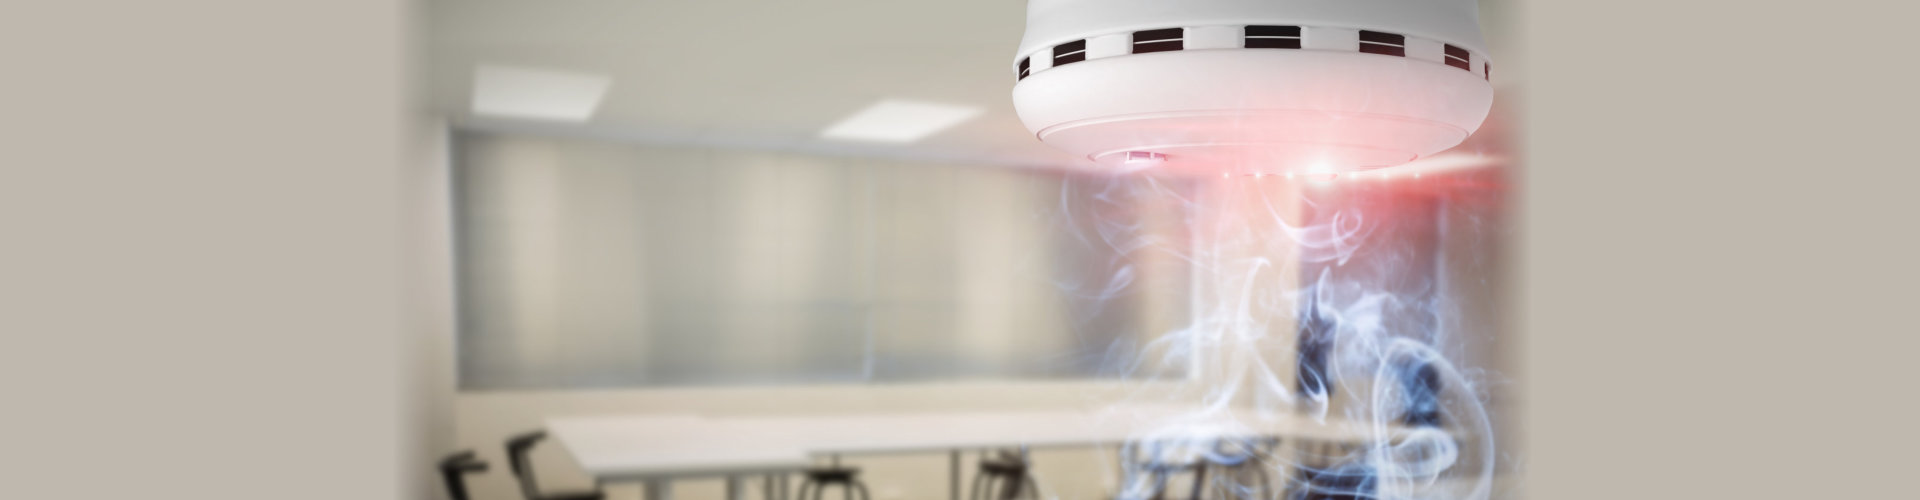 Composite image of smoke and fire detector